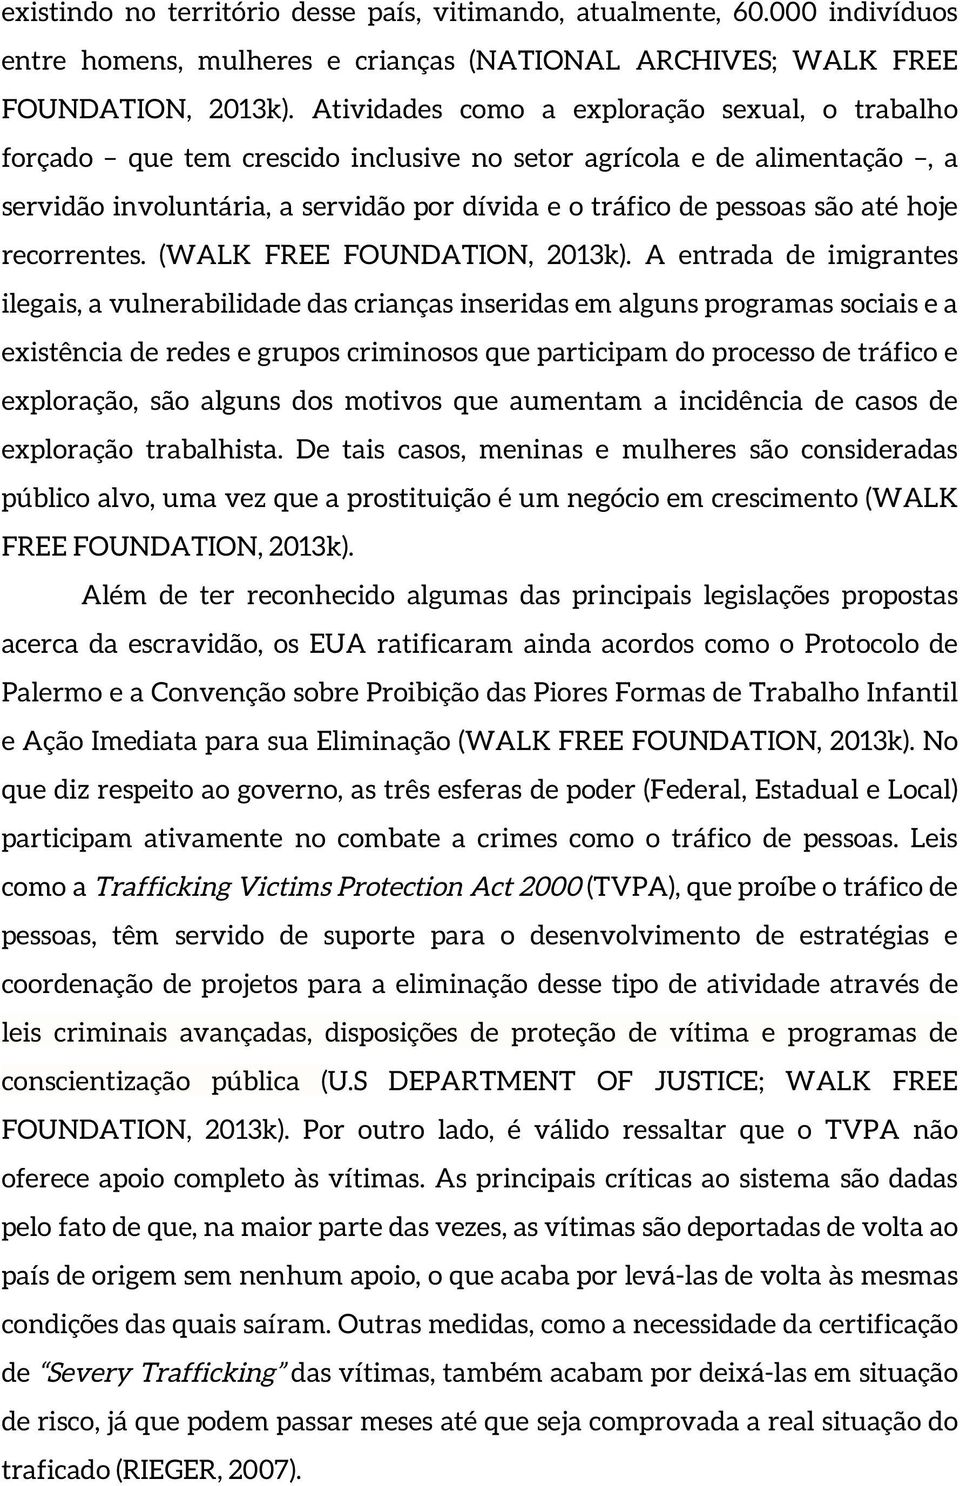 hoje recorrentes. (WALK FREE FOUNDATION, 2013k).